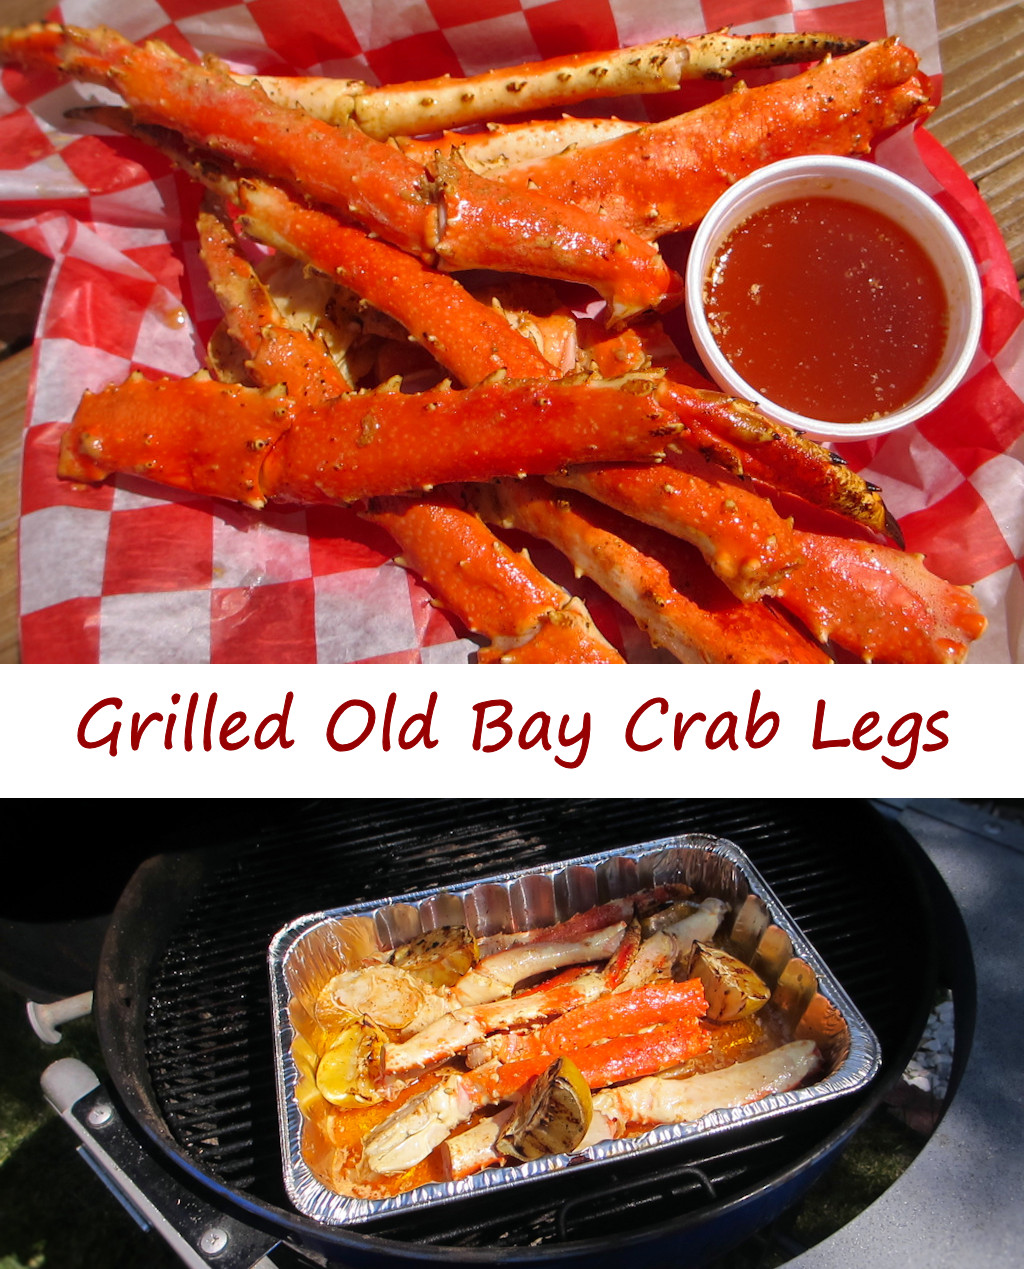 Grilled Old Bay Crab Legs